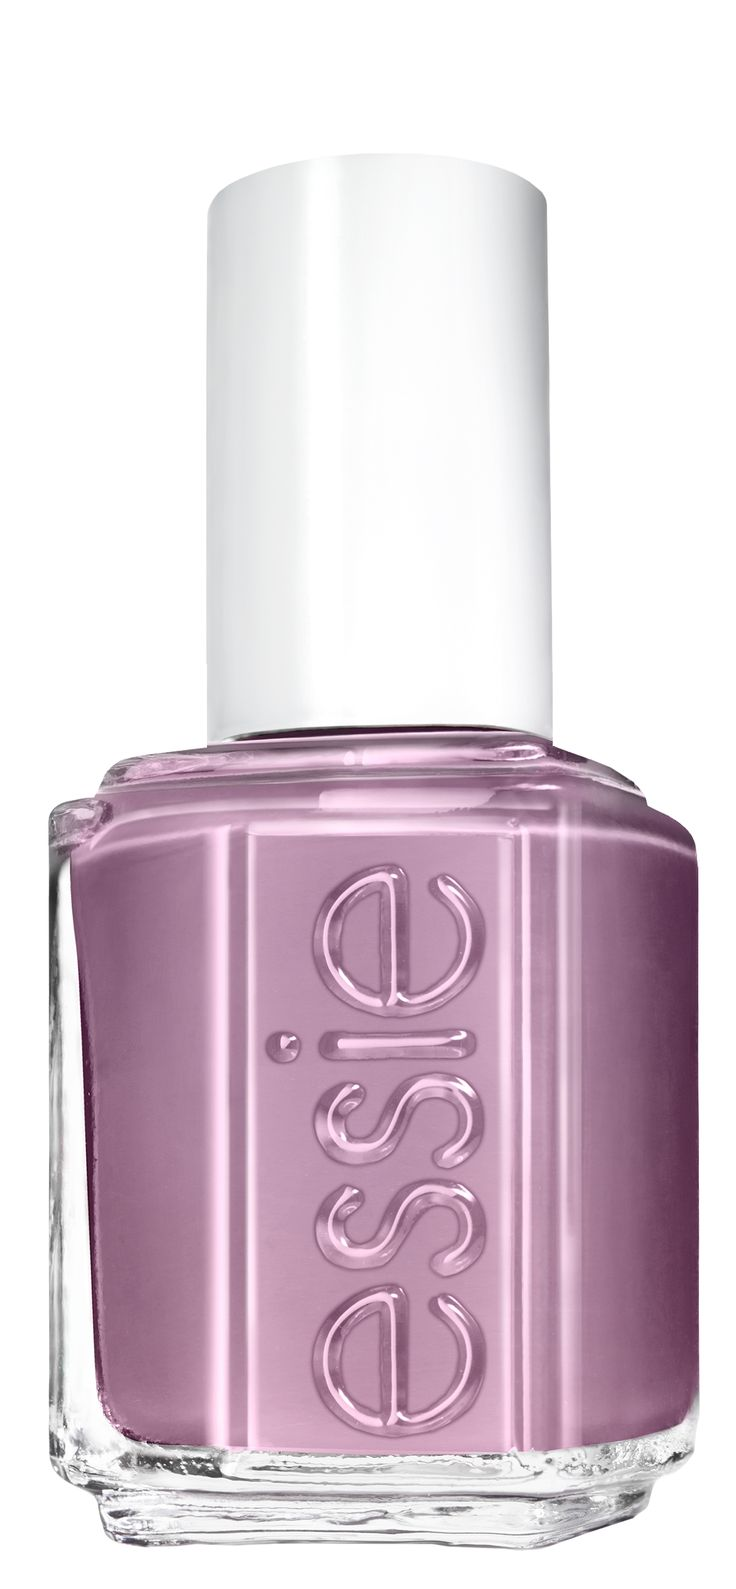 Weirdest Essie Nail Polish Names - To Bend Light